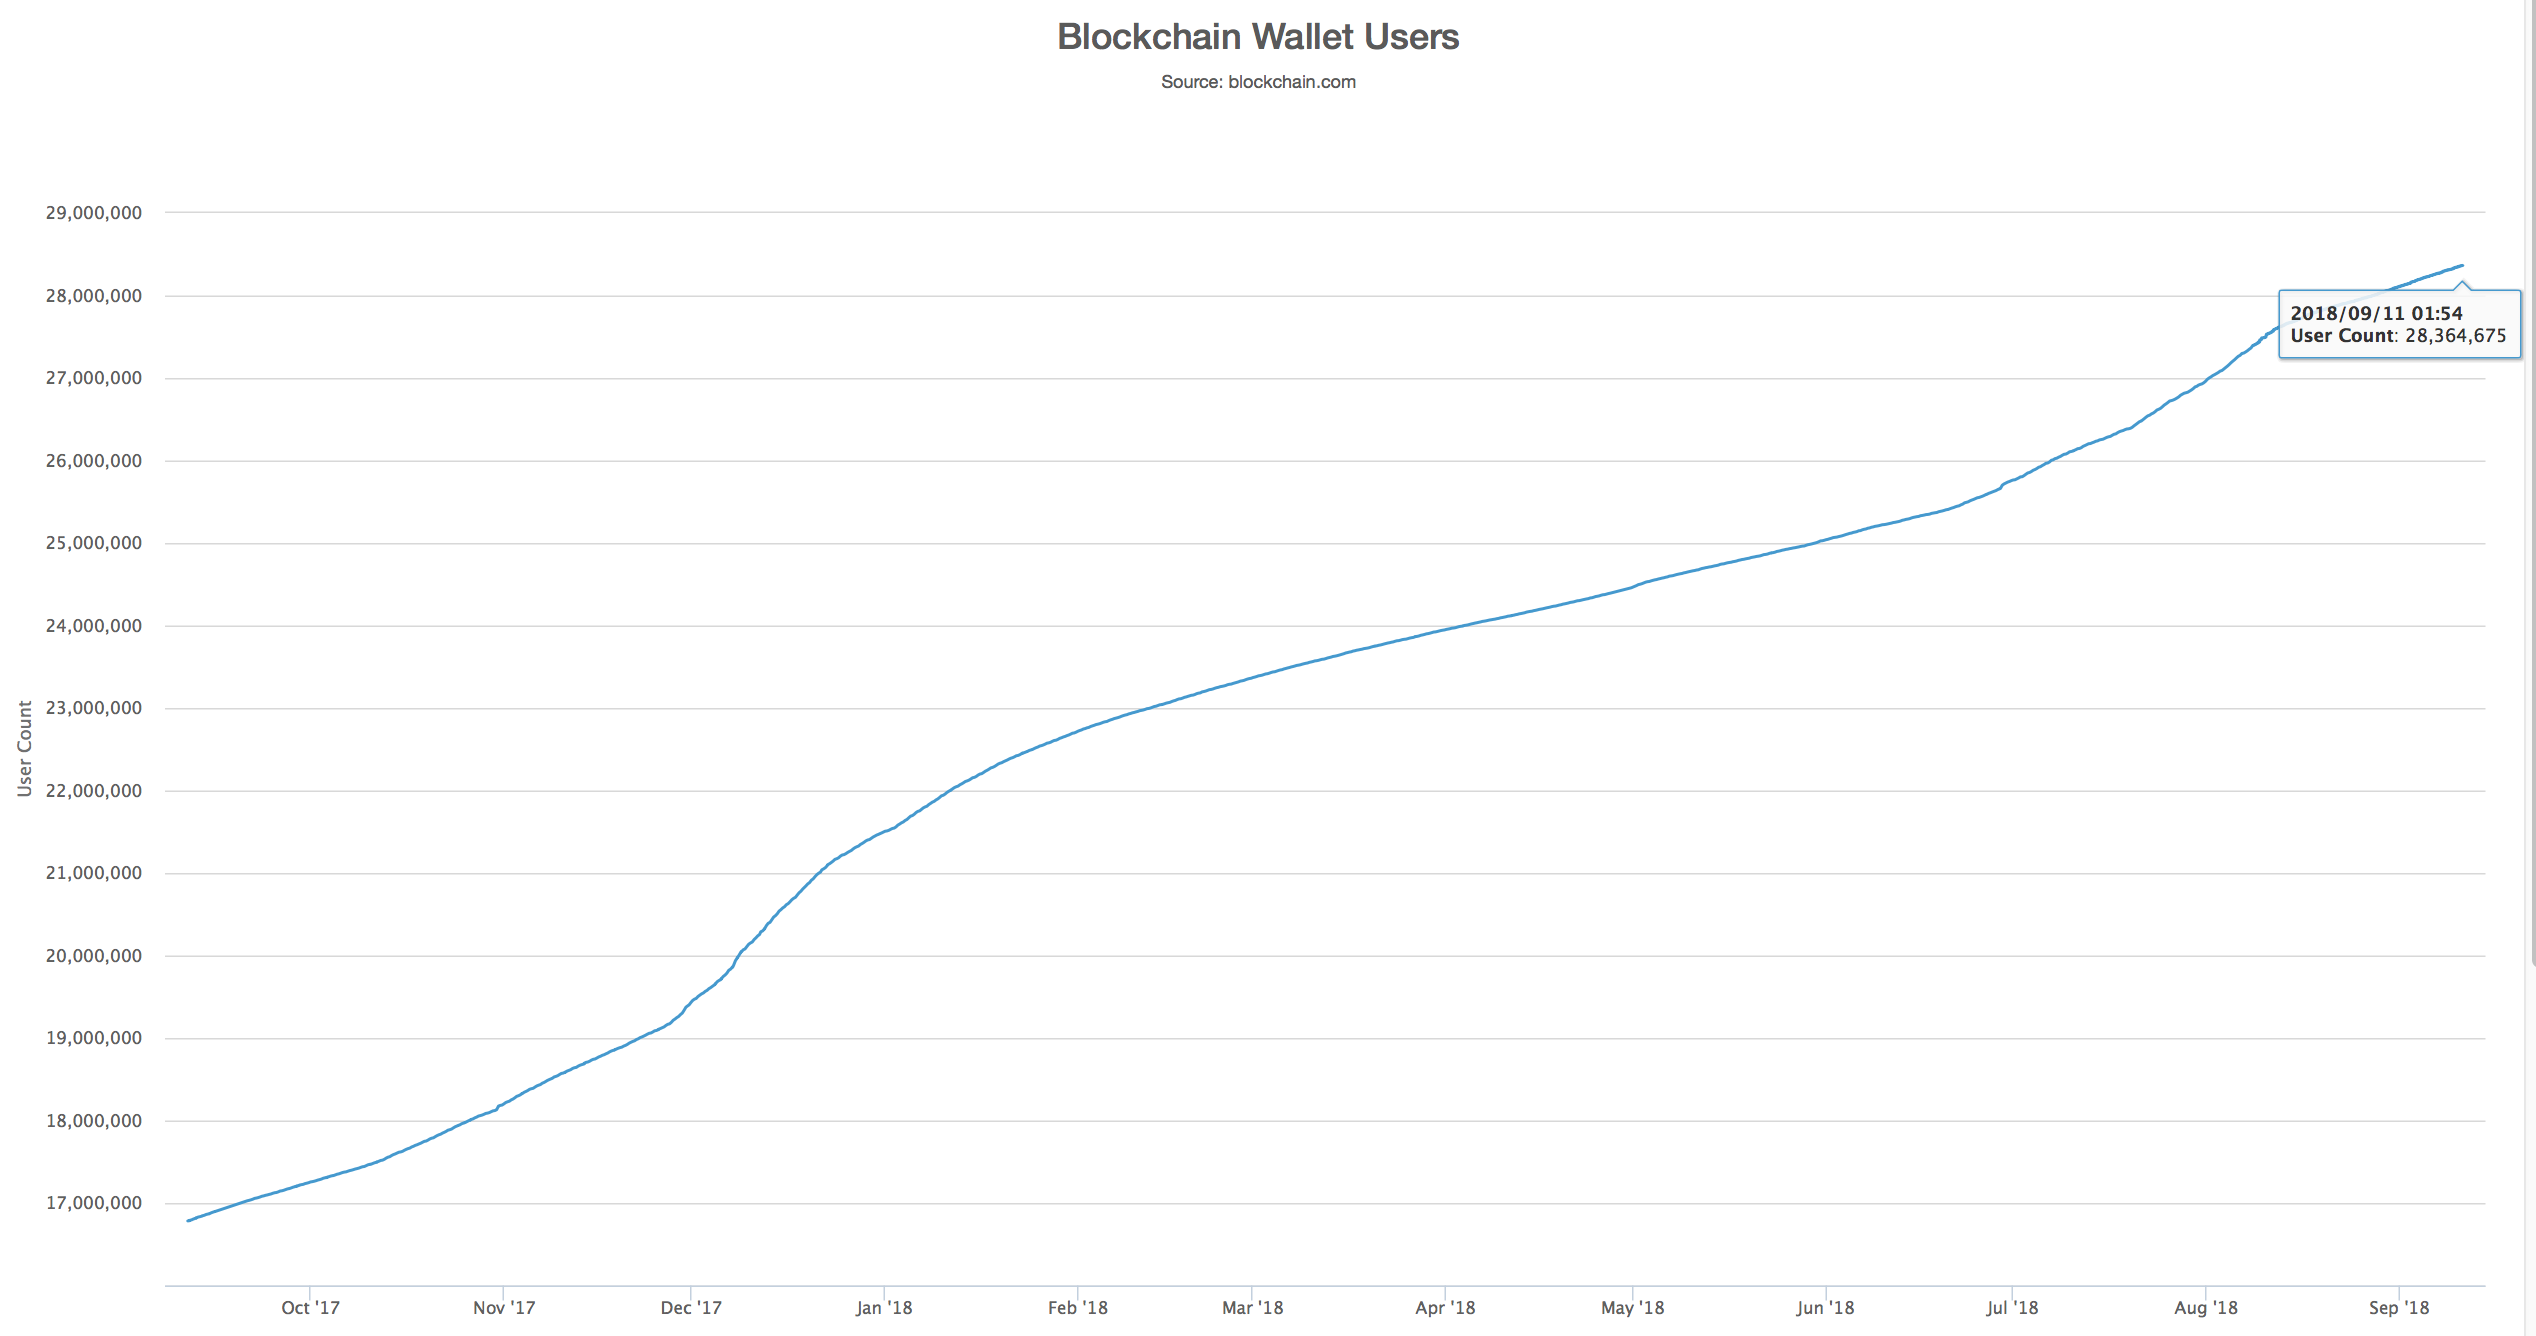 Bitcoin: Widespread Adoption Could Drive Prices Much Higher